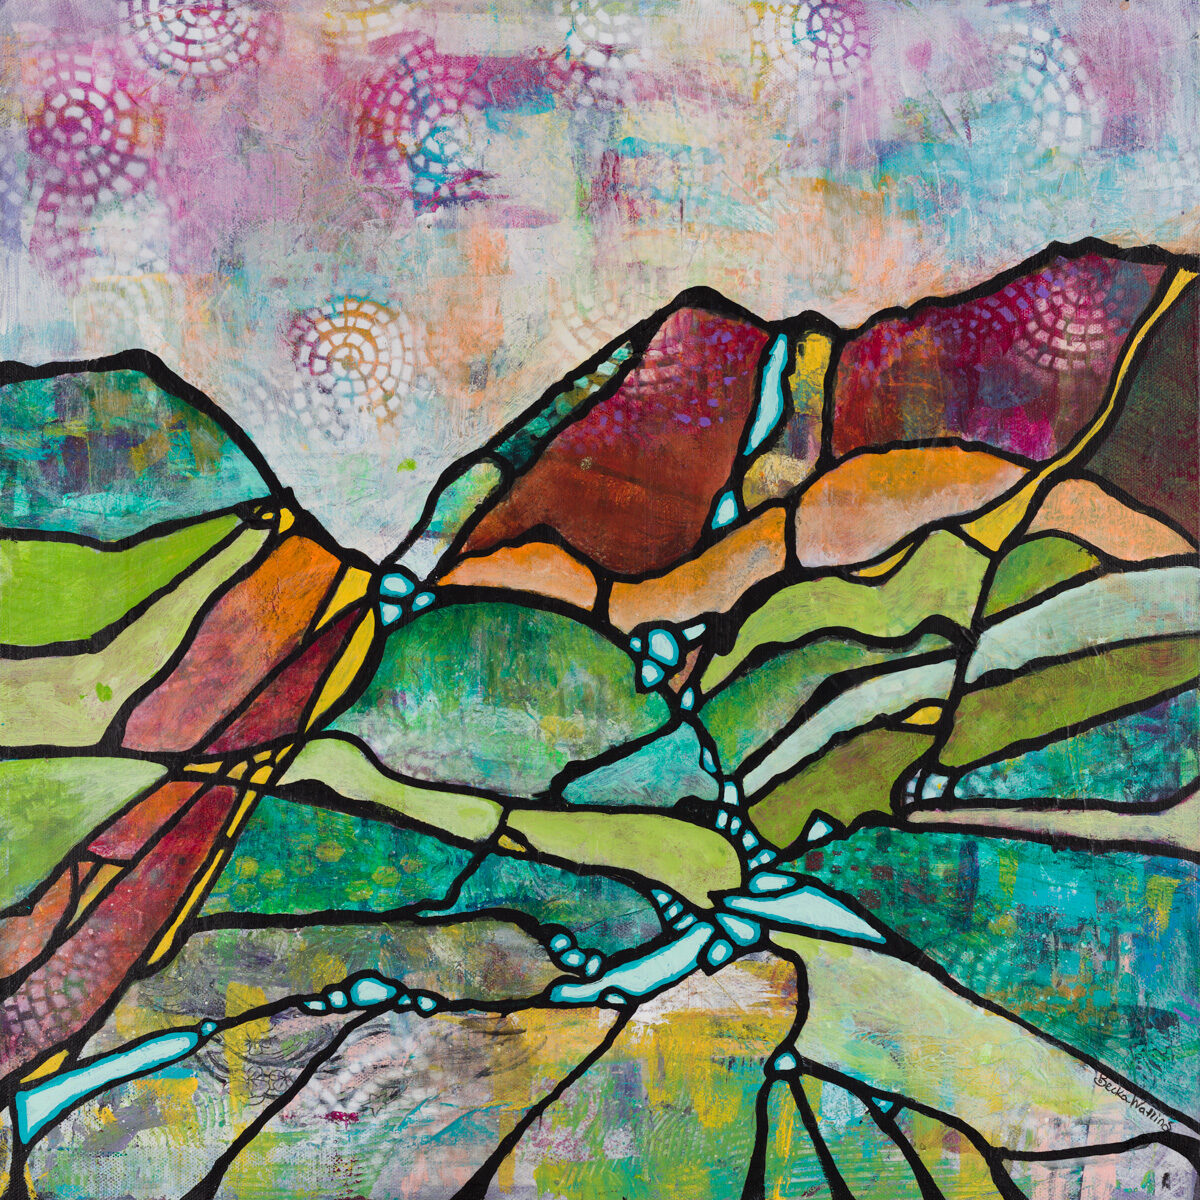 """""""Ridges and Rivers"""" by Becka Watkins, 20x20"""" wrapped canvas (no frame)"""